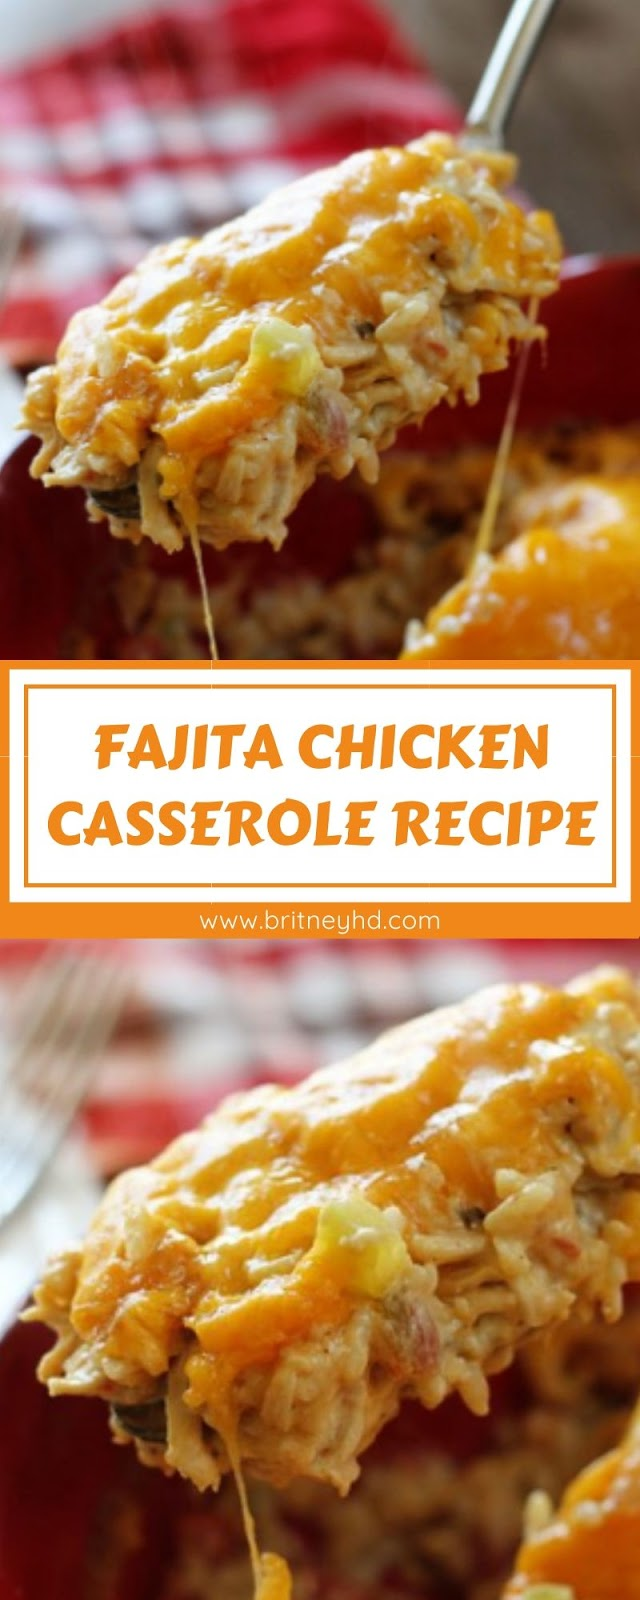 FAJITA CHICKEN CASSEROLE RECIPE